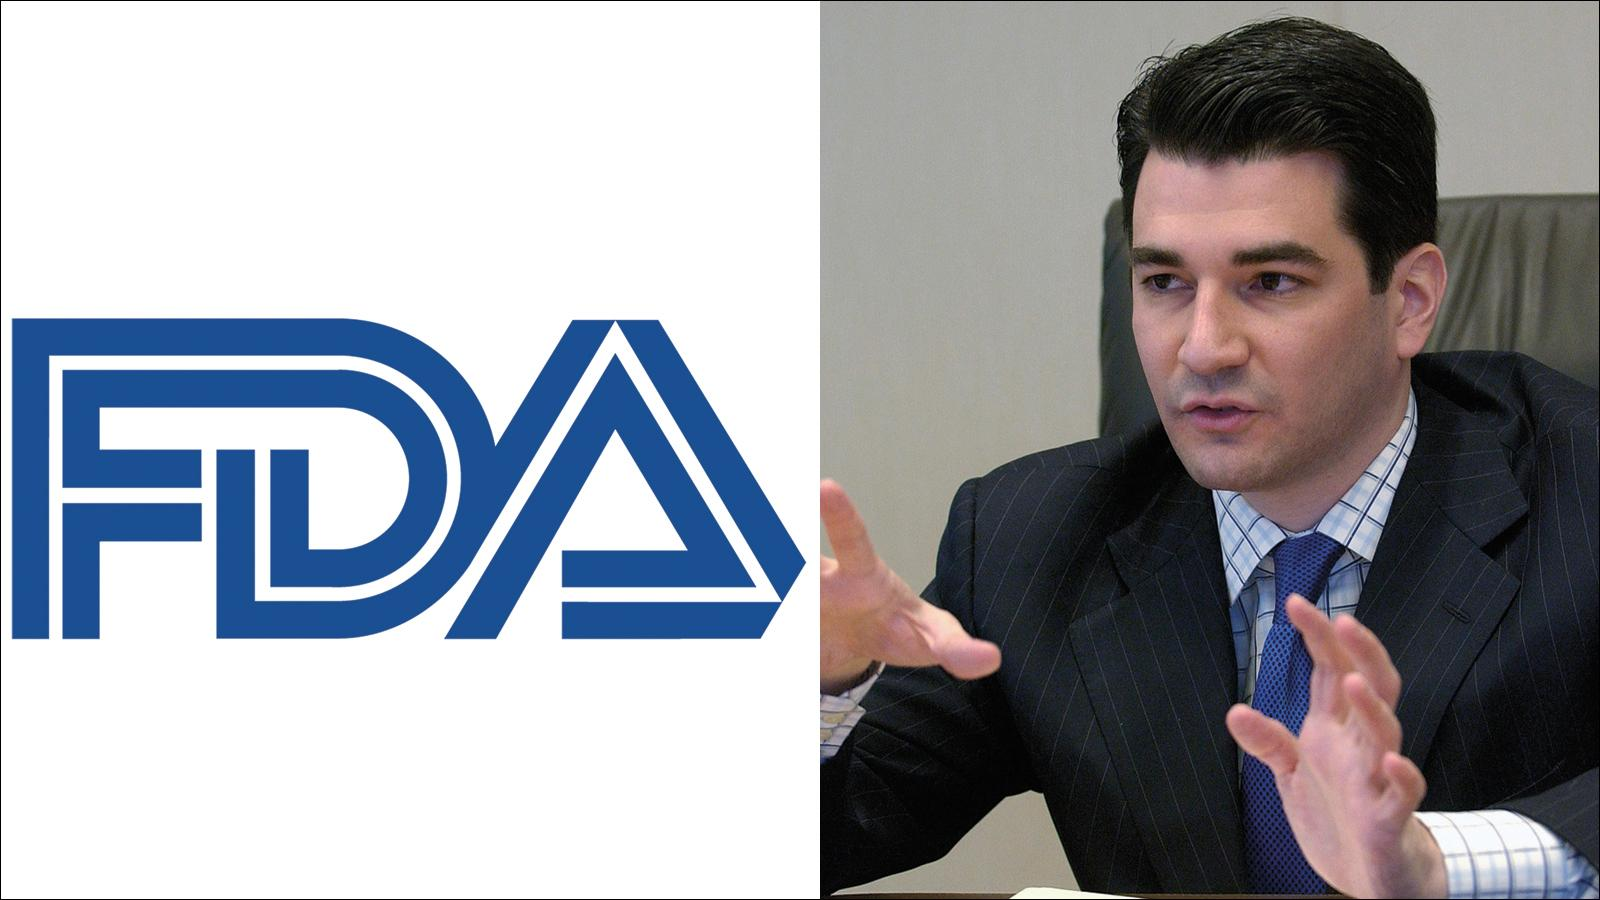 New FDA Commissioner Comments On Premium Cigars